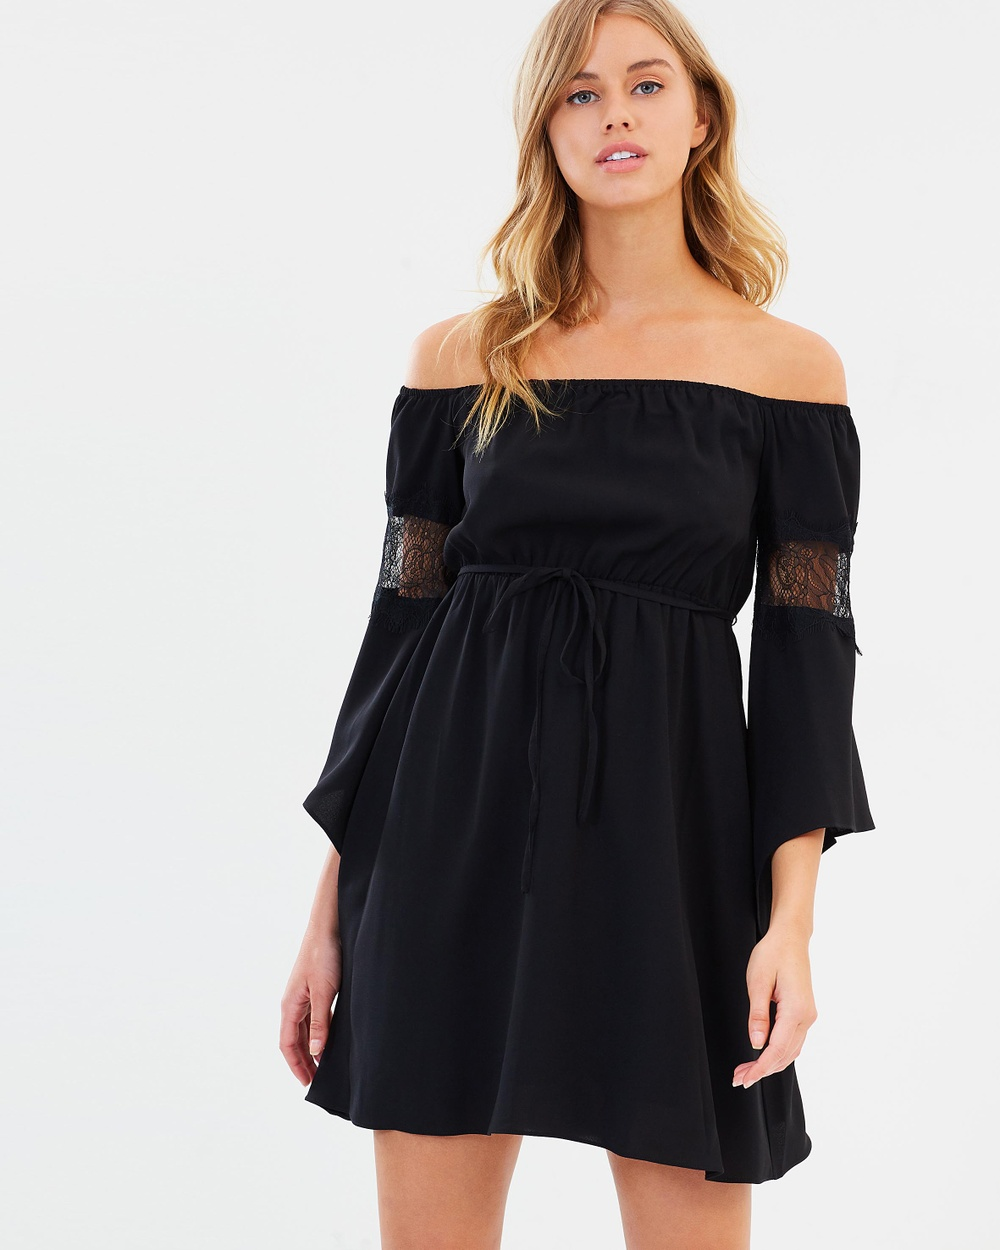 Photo of Atmos & Here Black ICONIC EXCLUSIVE - Veda Asymmetric Dress - beautiful dress from Atmos & Here online